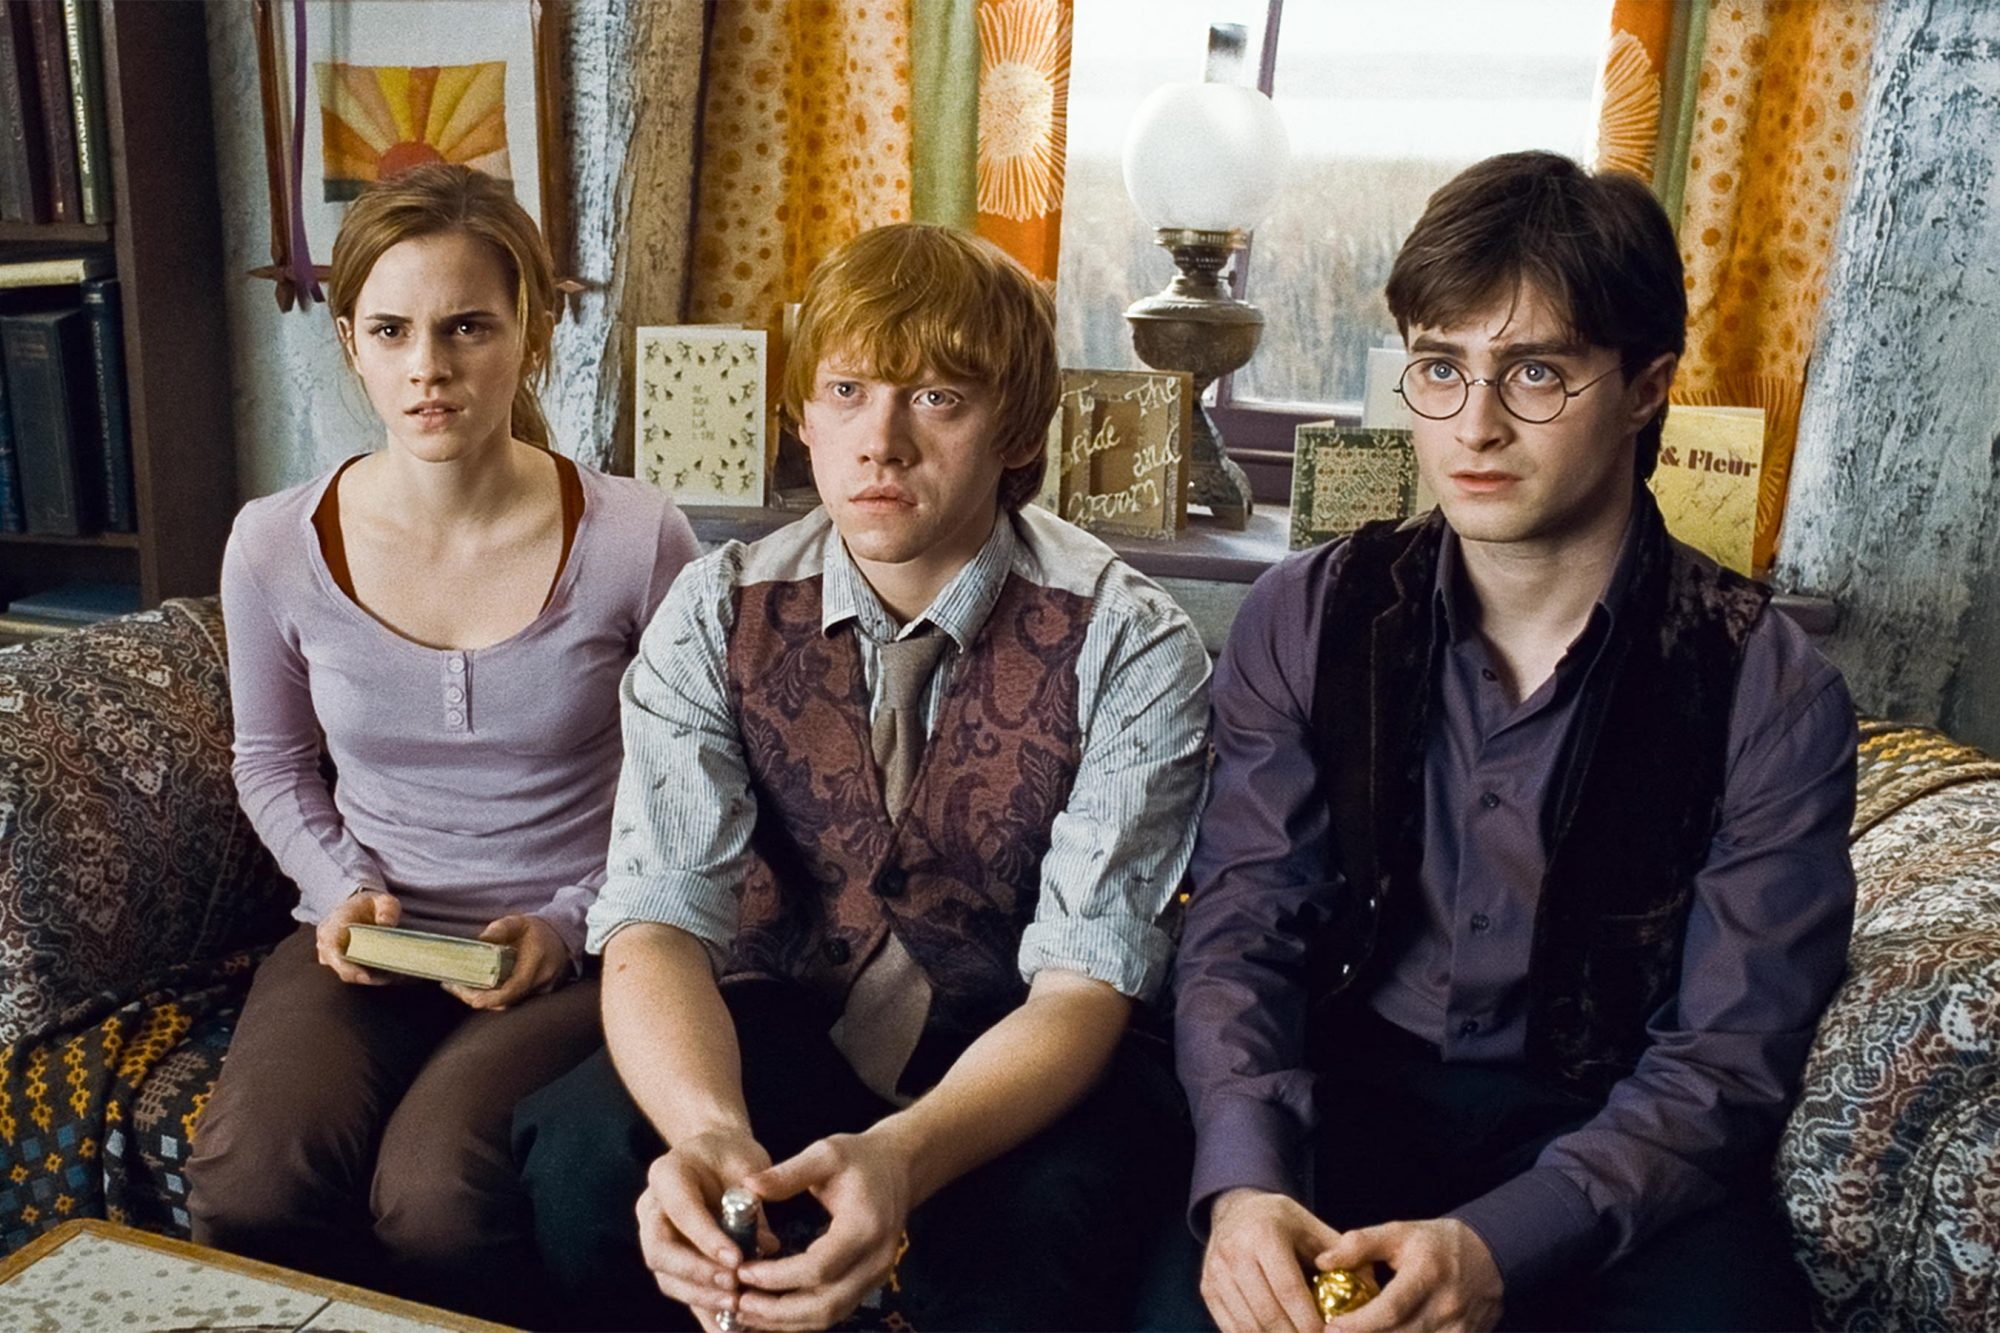 Harry Potter and the Deathly Hallows: Part I (2010) (L-r) EMMA WATSON as Hermione Granger, RUPERT GRINT as Ron Weasley and DANIEL RADCLIFFE as Harry Potter Courtesy Warner Bros.